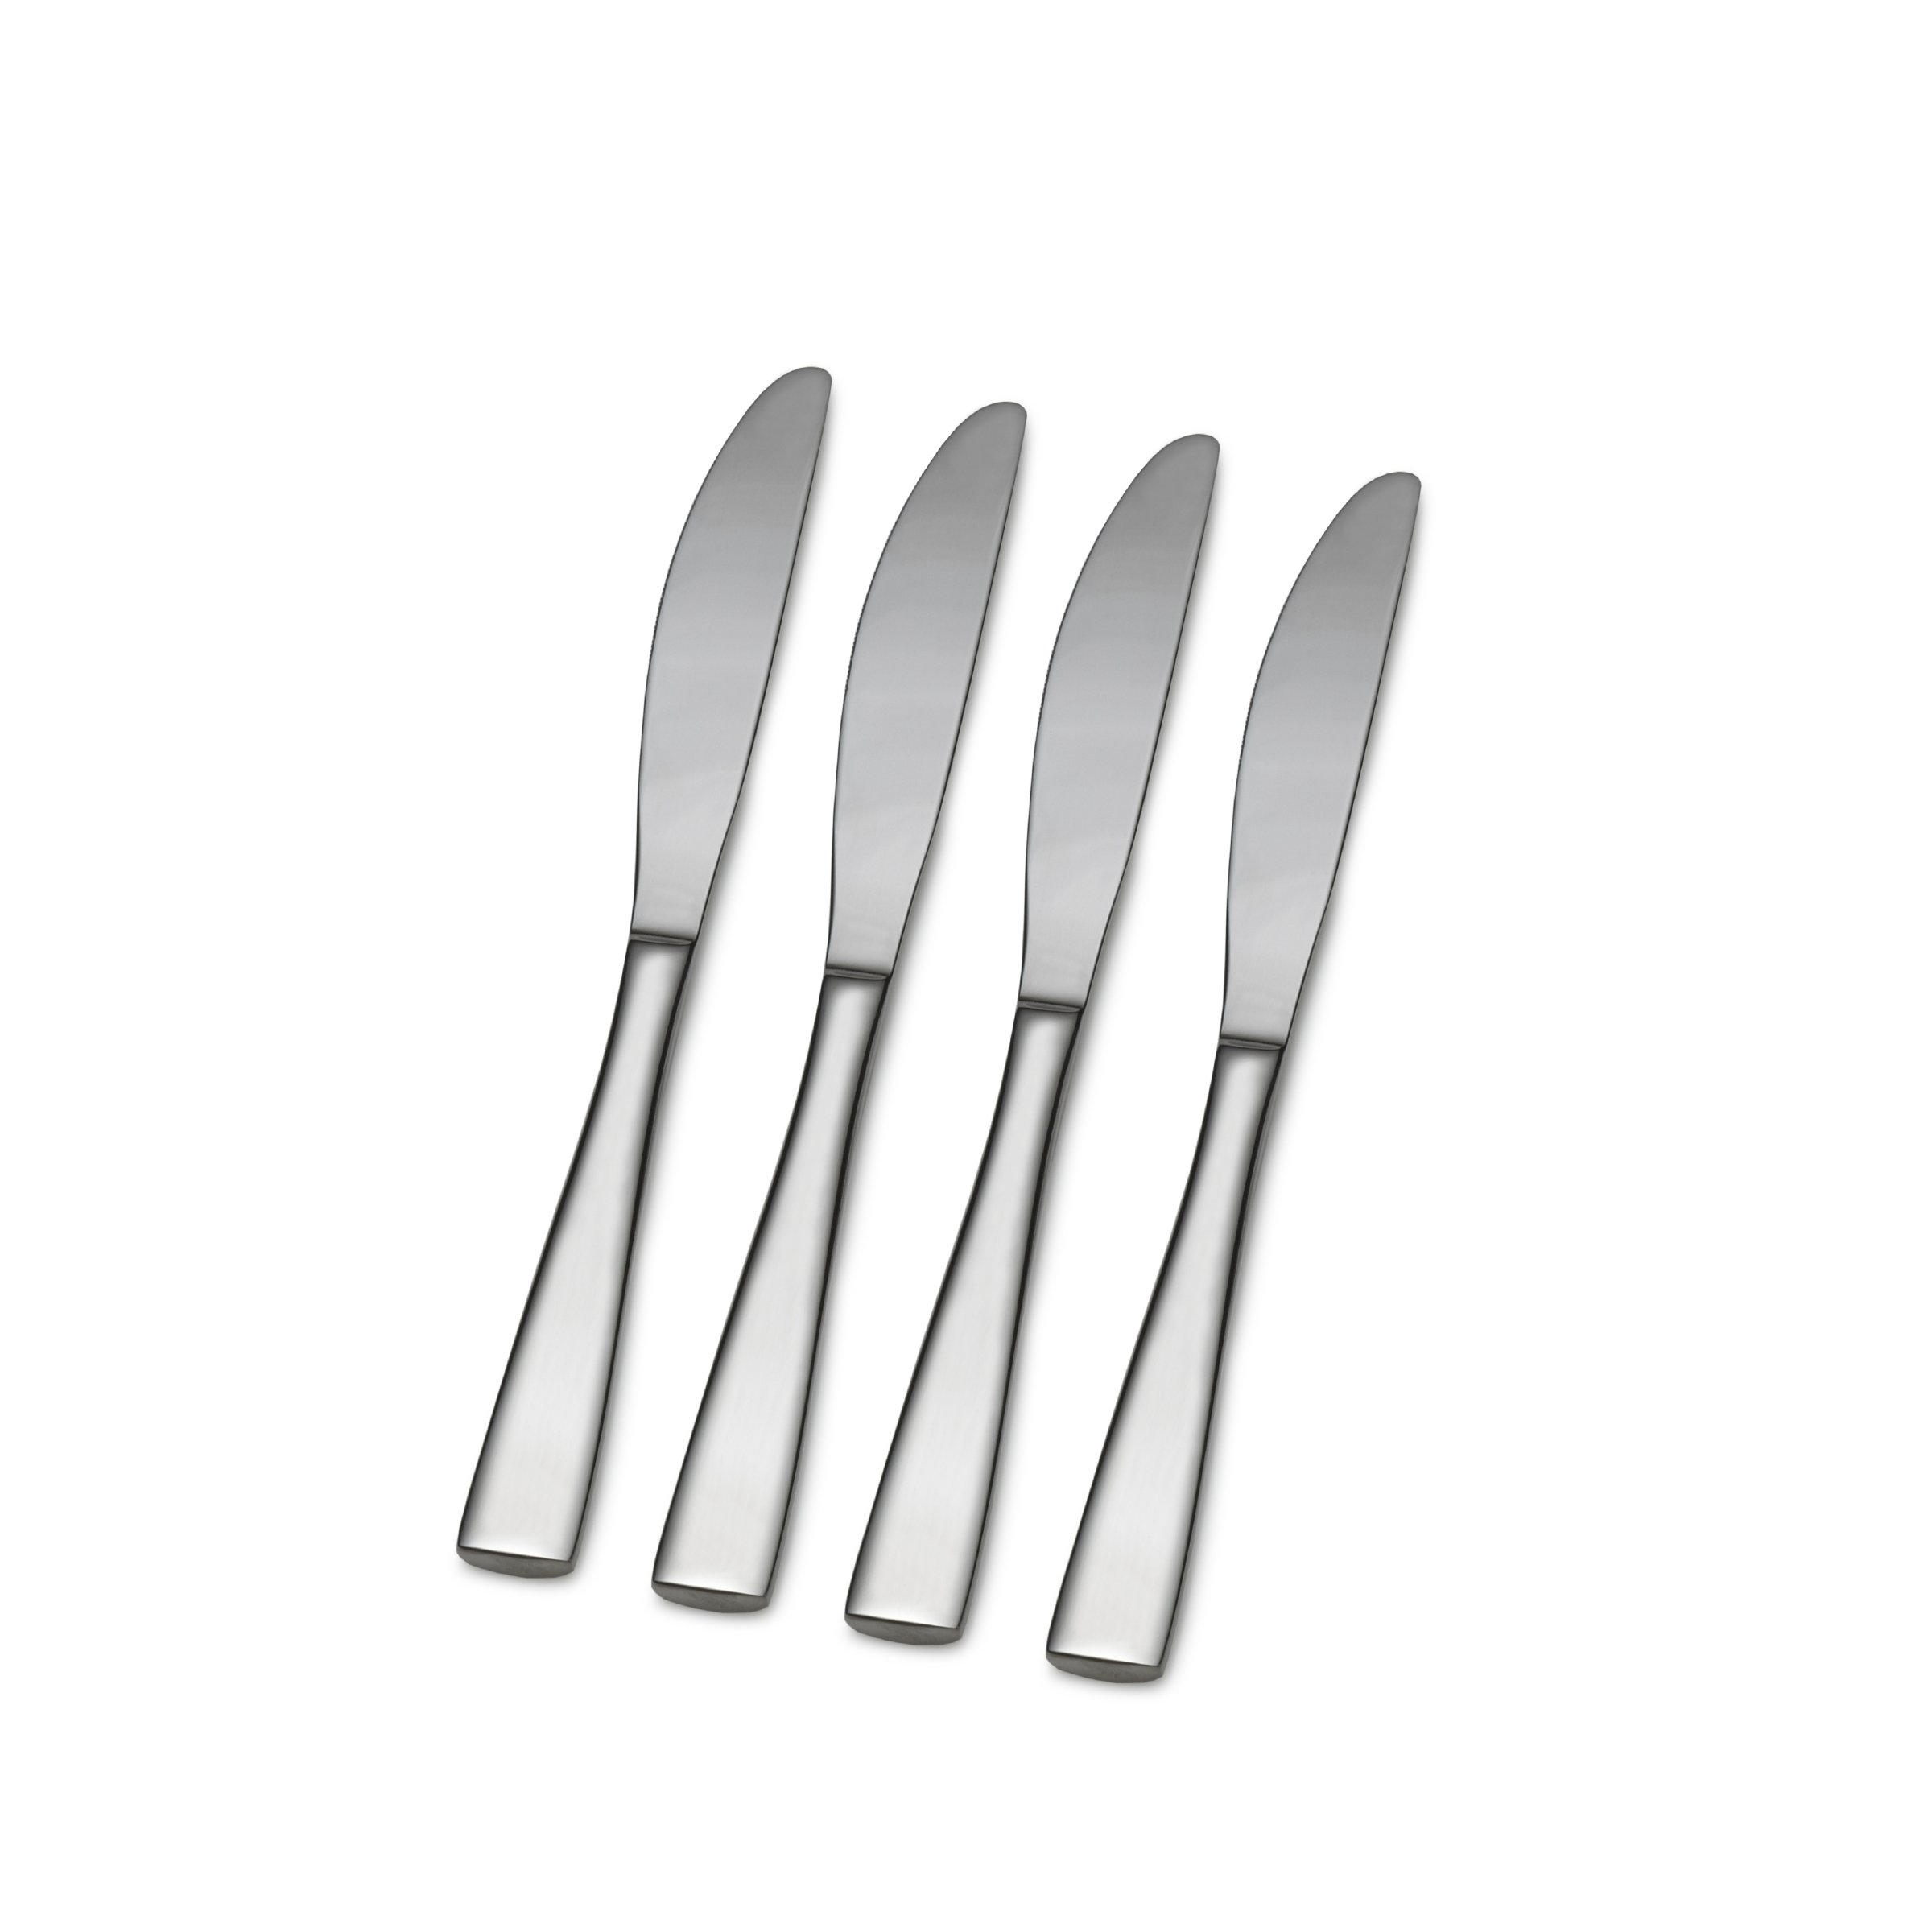 Pfaltzgraff 5099098 Danford Stainless Steel Dinner Knife, Set of 4